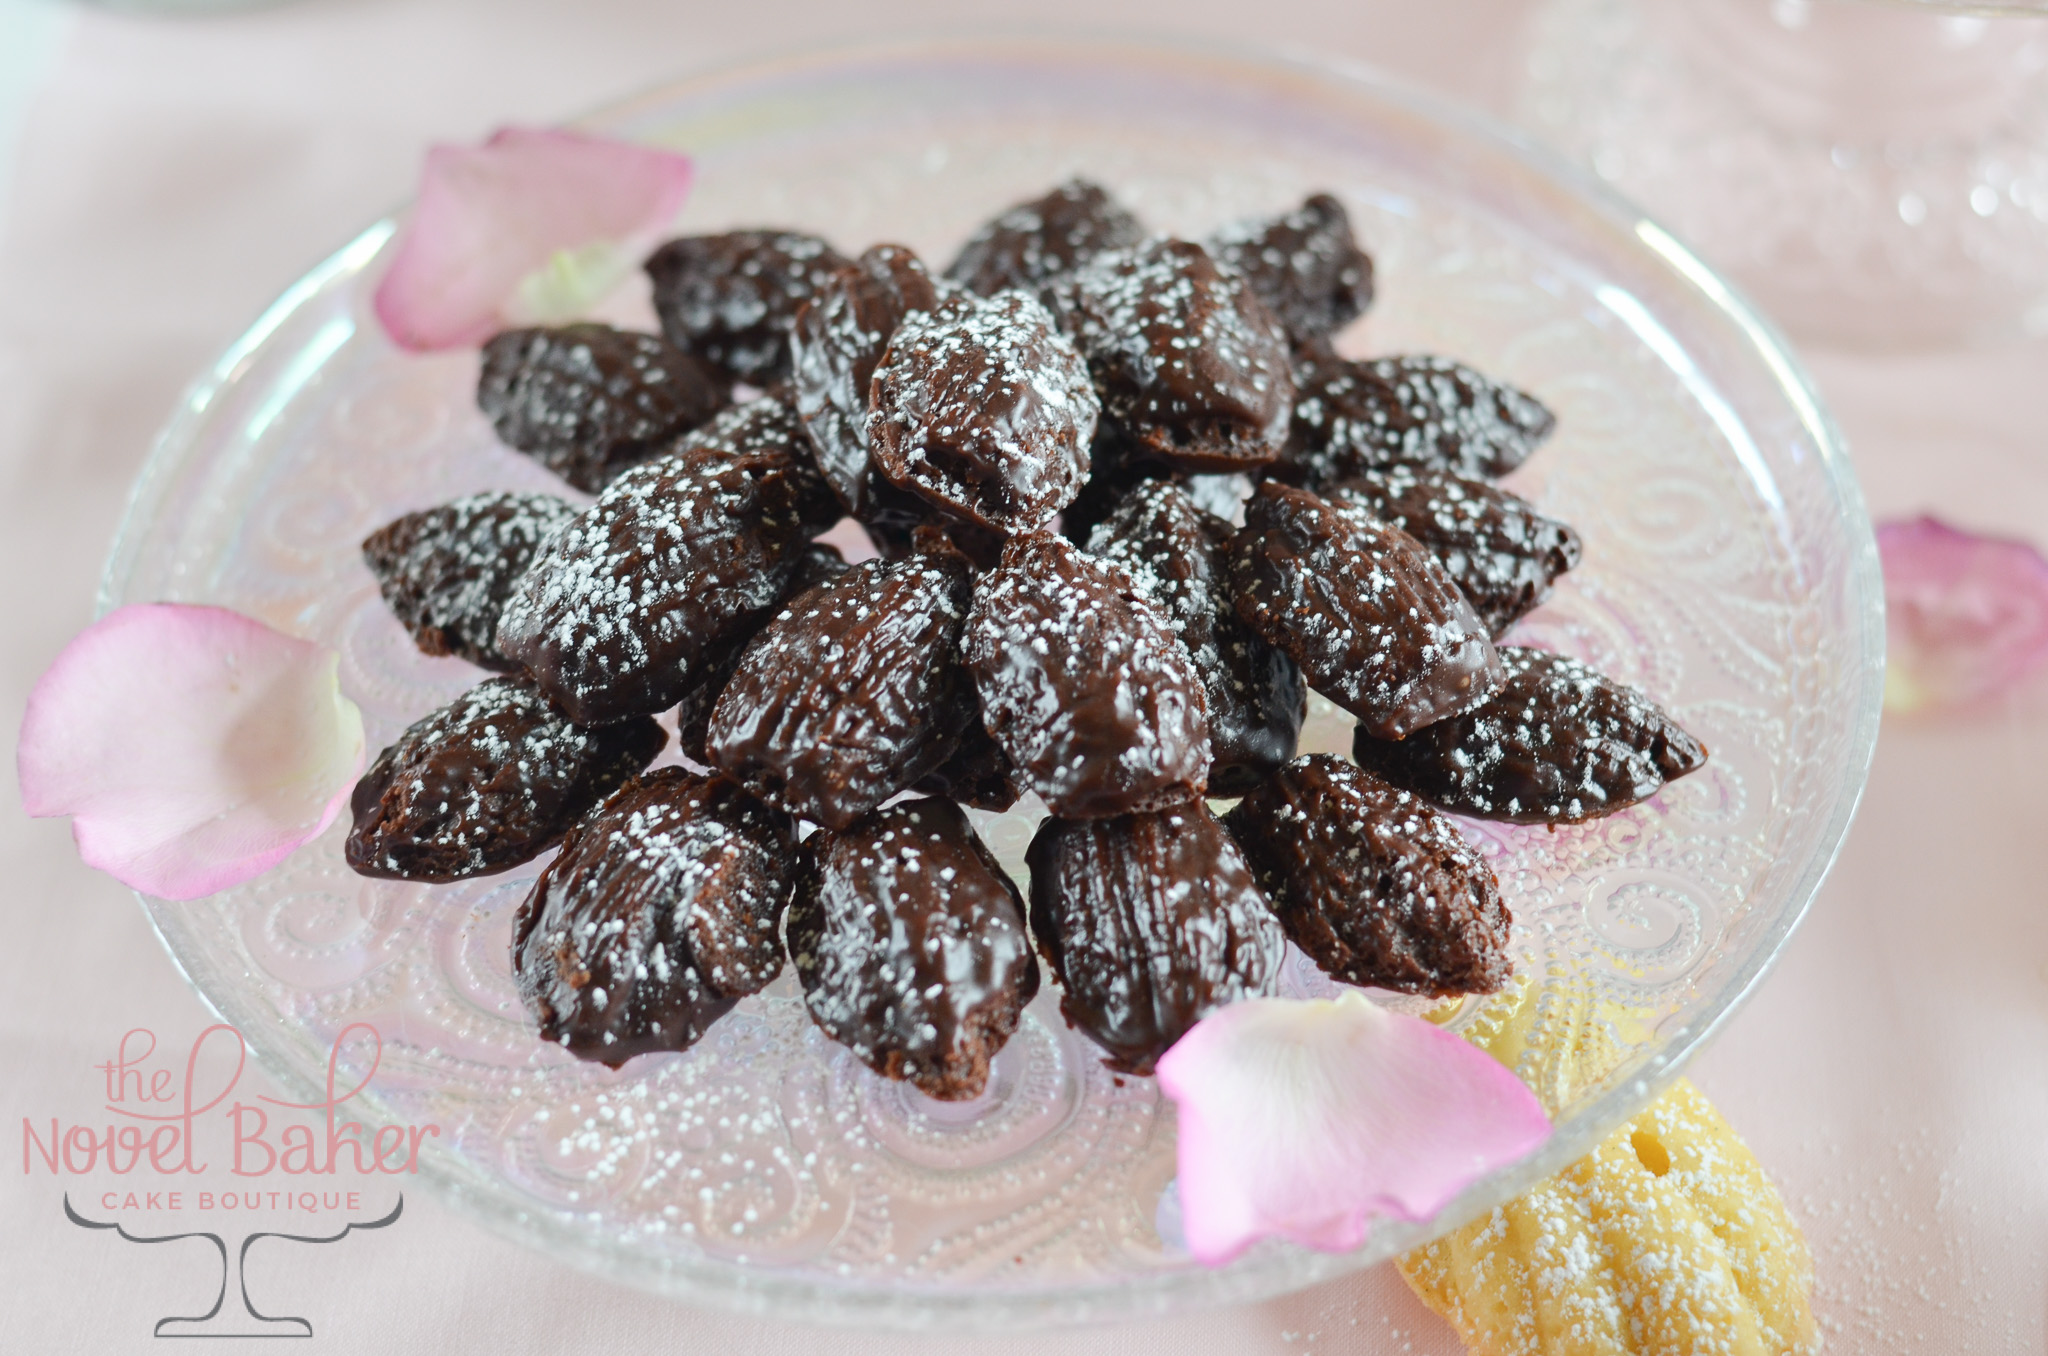 Mini Chocolate Madeleines sprinkled with sugar set upon a glass pedestal with rose petals